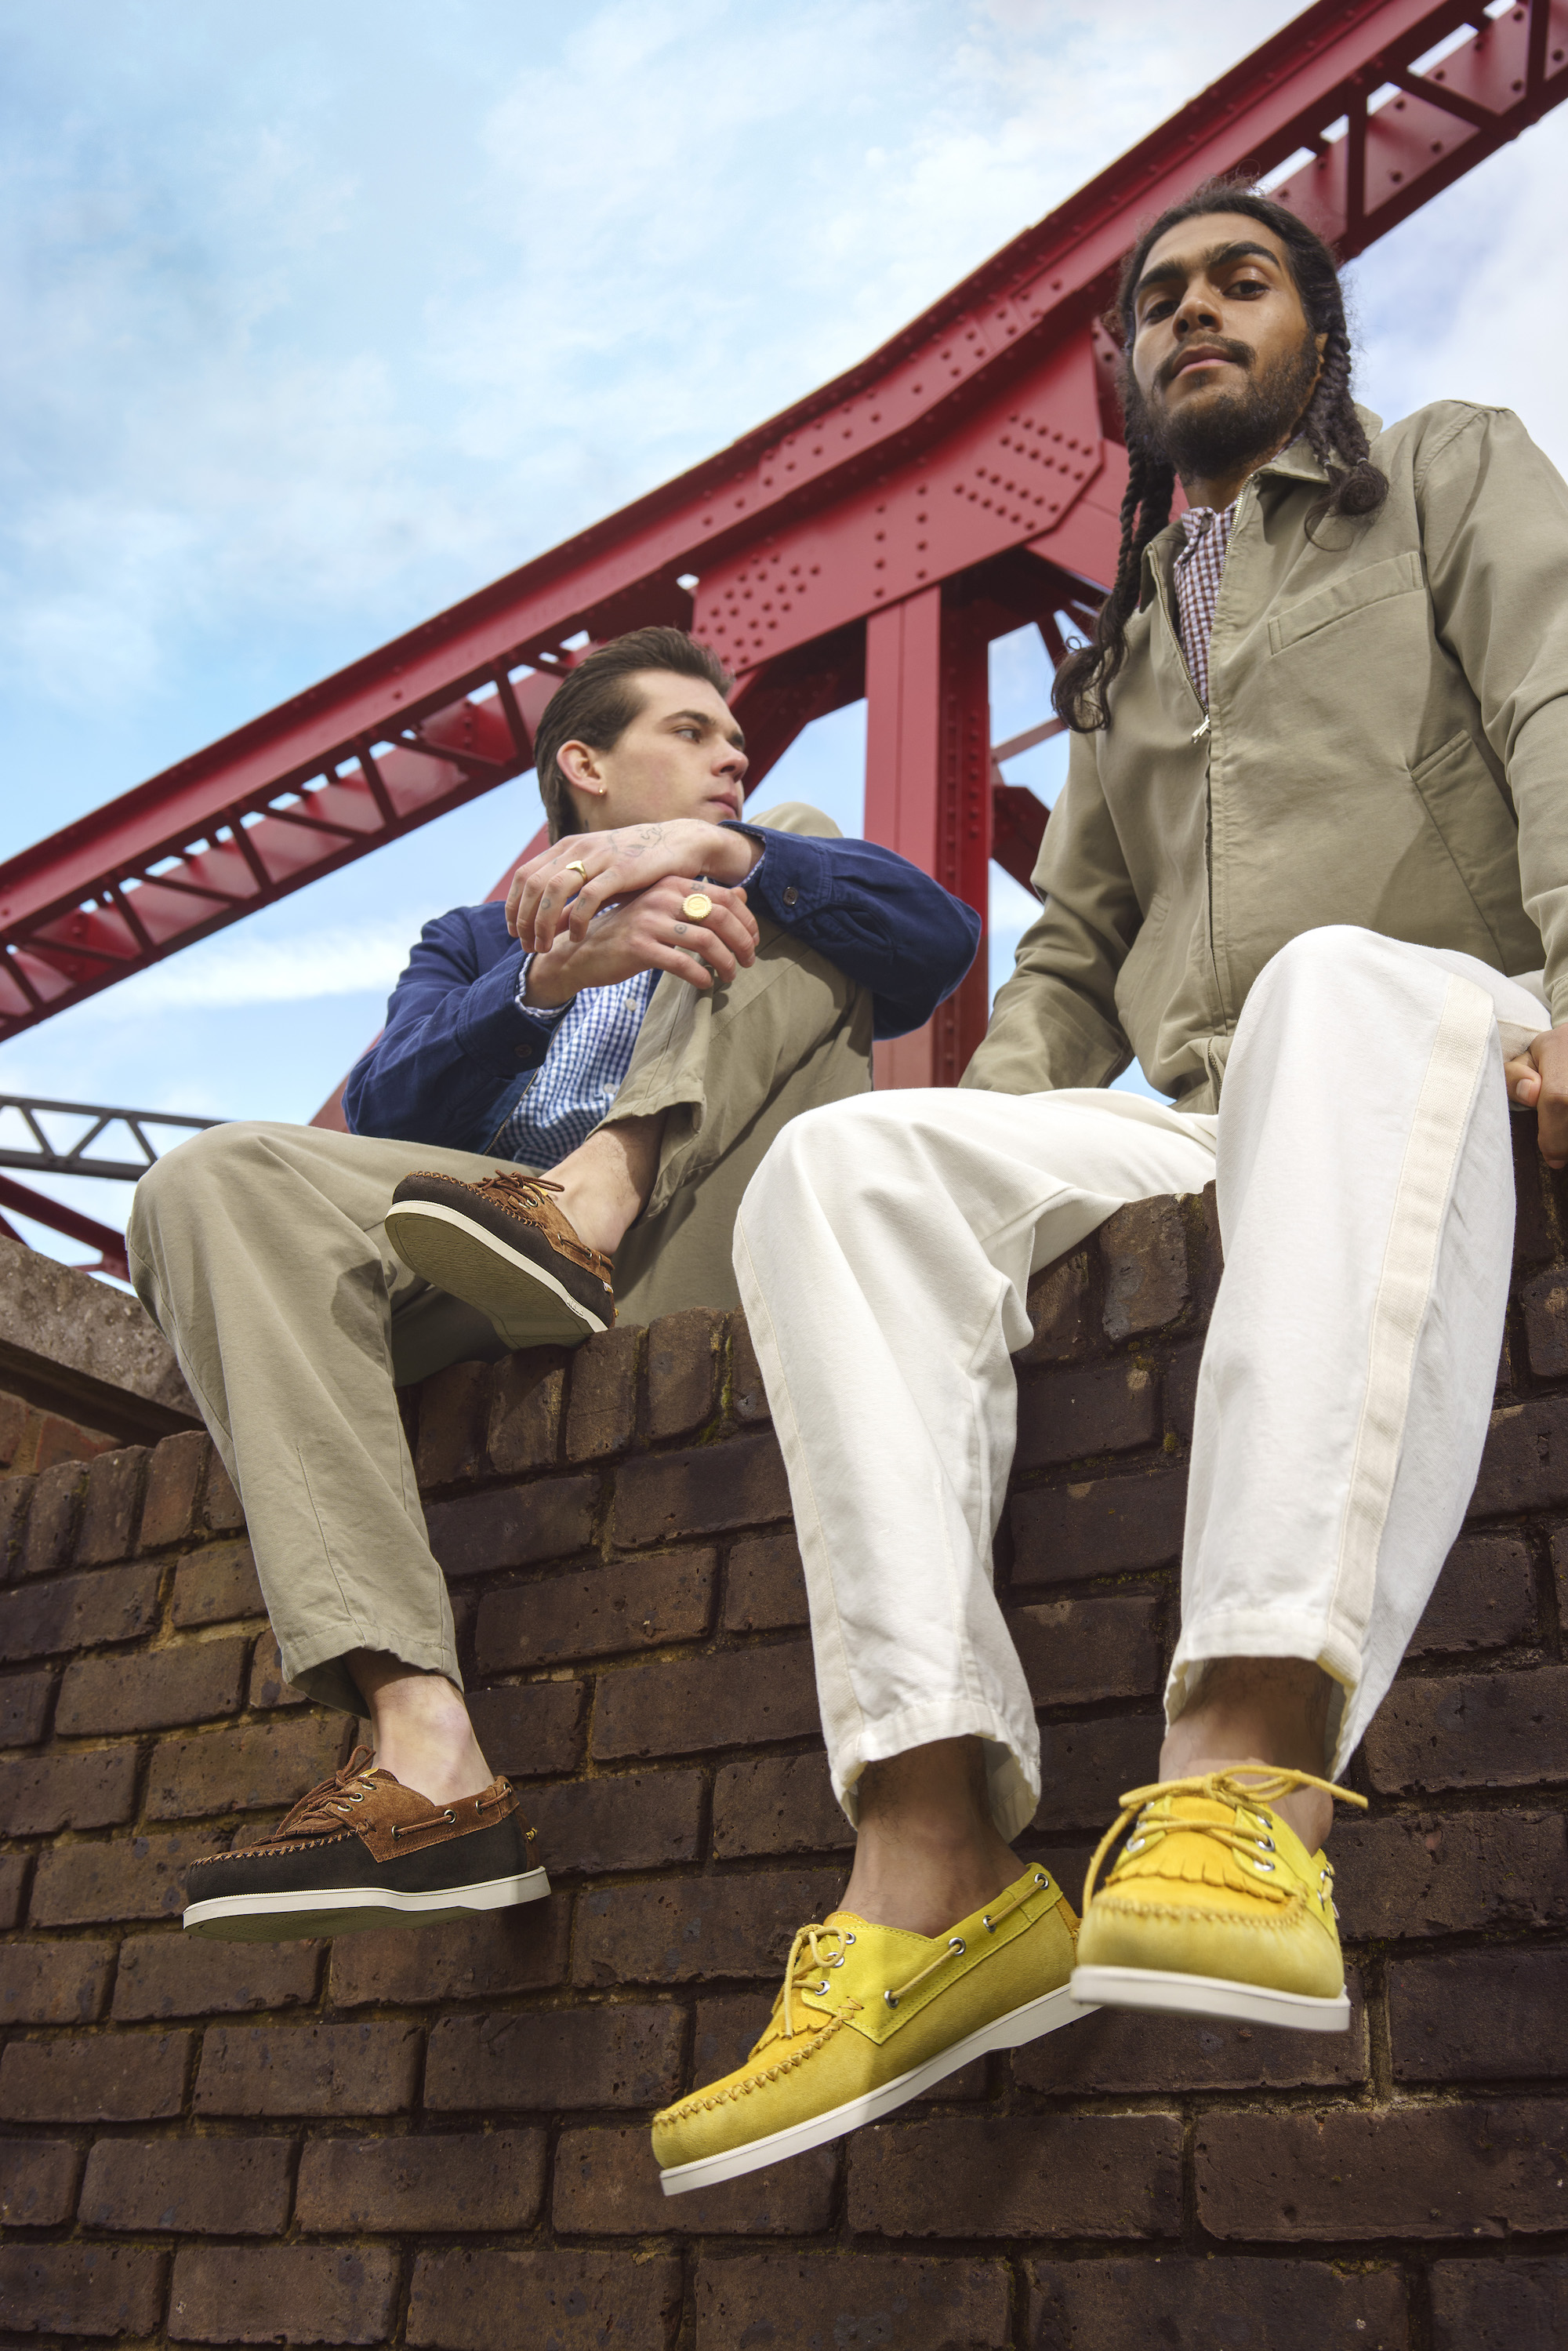 Universal works x Sebago collaboration for SS20 yellow and brown portland boat shoes